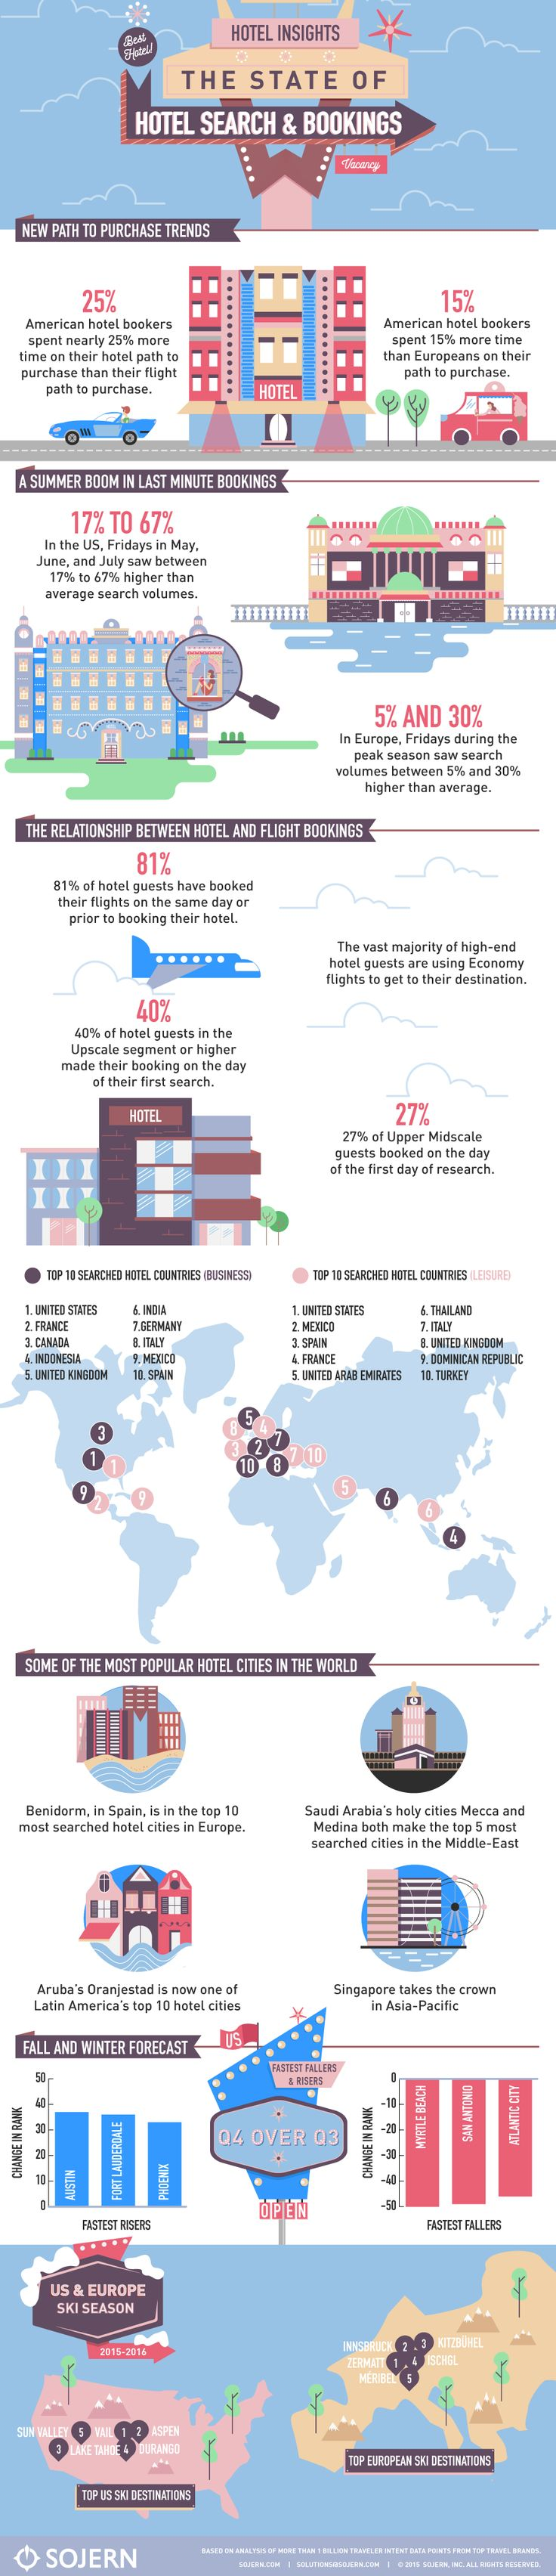 2015-hotel-travel-insights-infographic-sojern